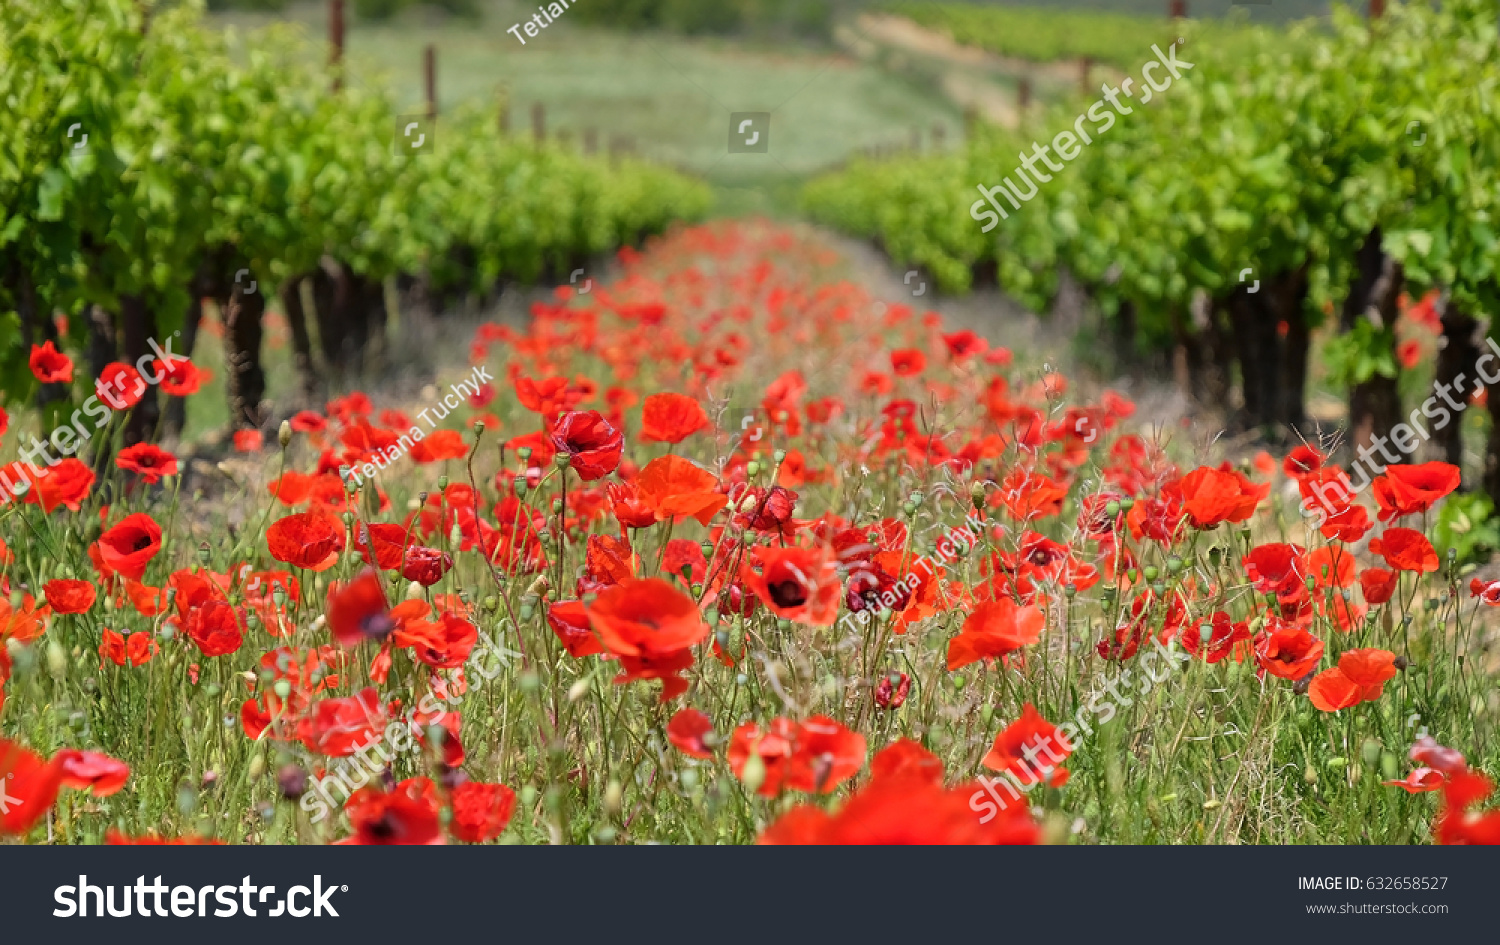 Growing grapes poppies french vineyard stock photo edit now growing grapes and poppies in a french vineyard mightylinksfo